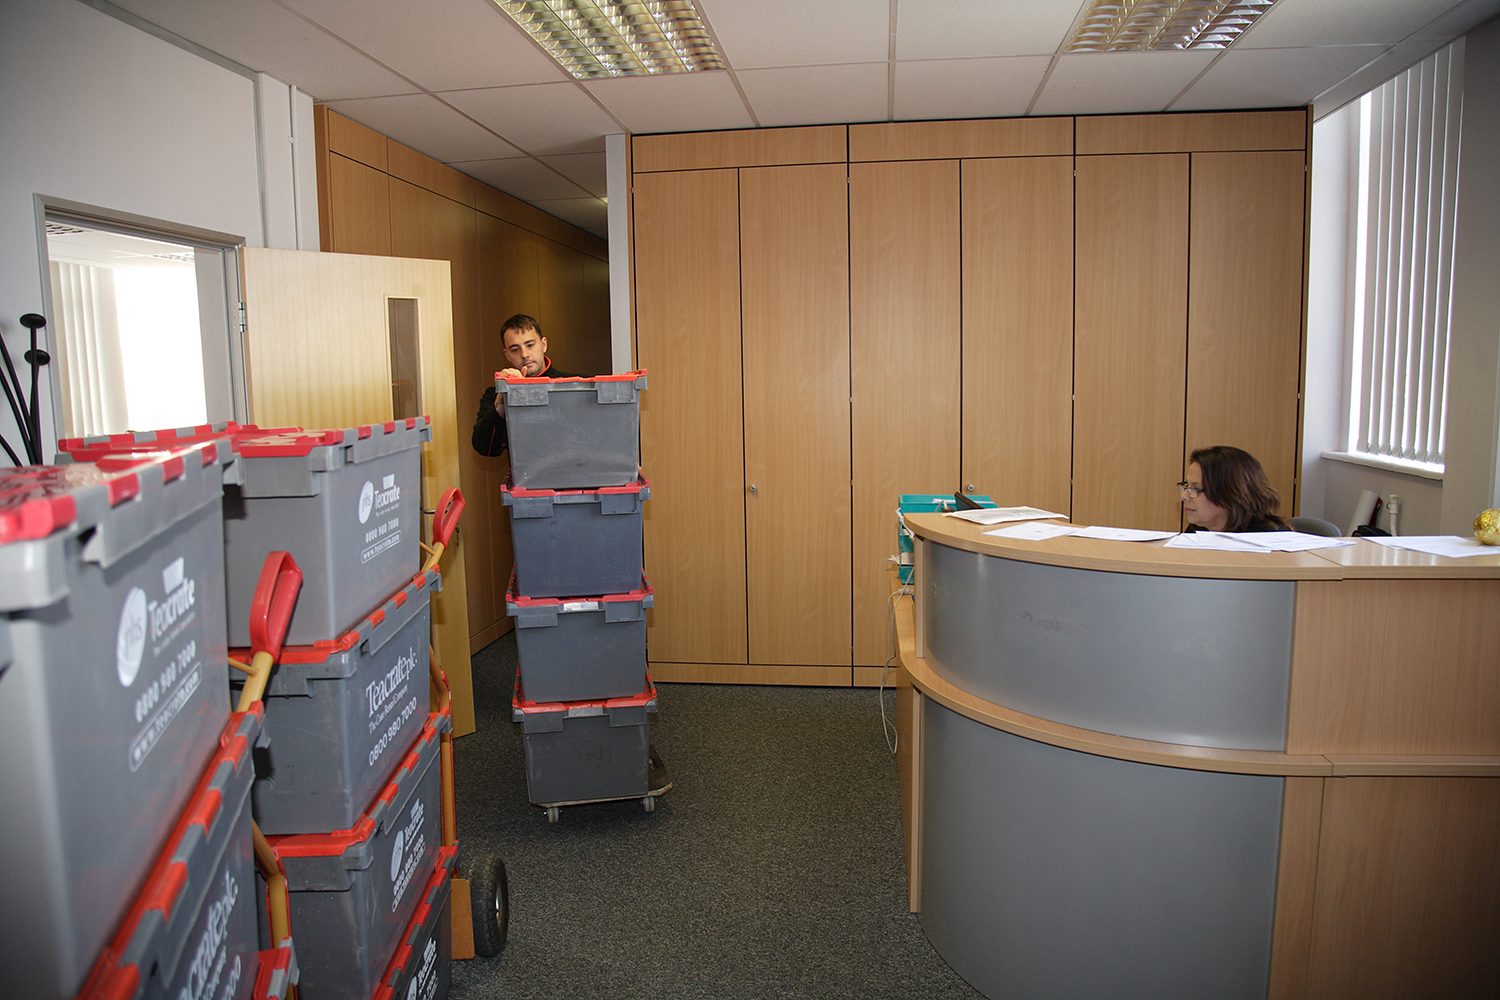 London office business removal service